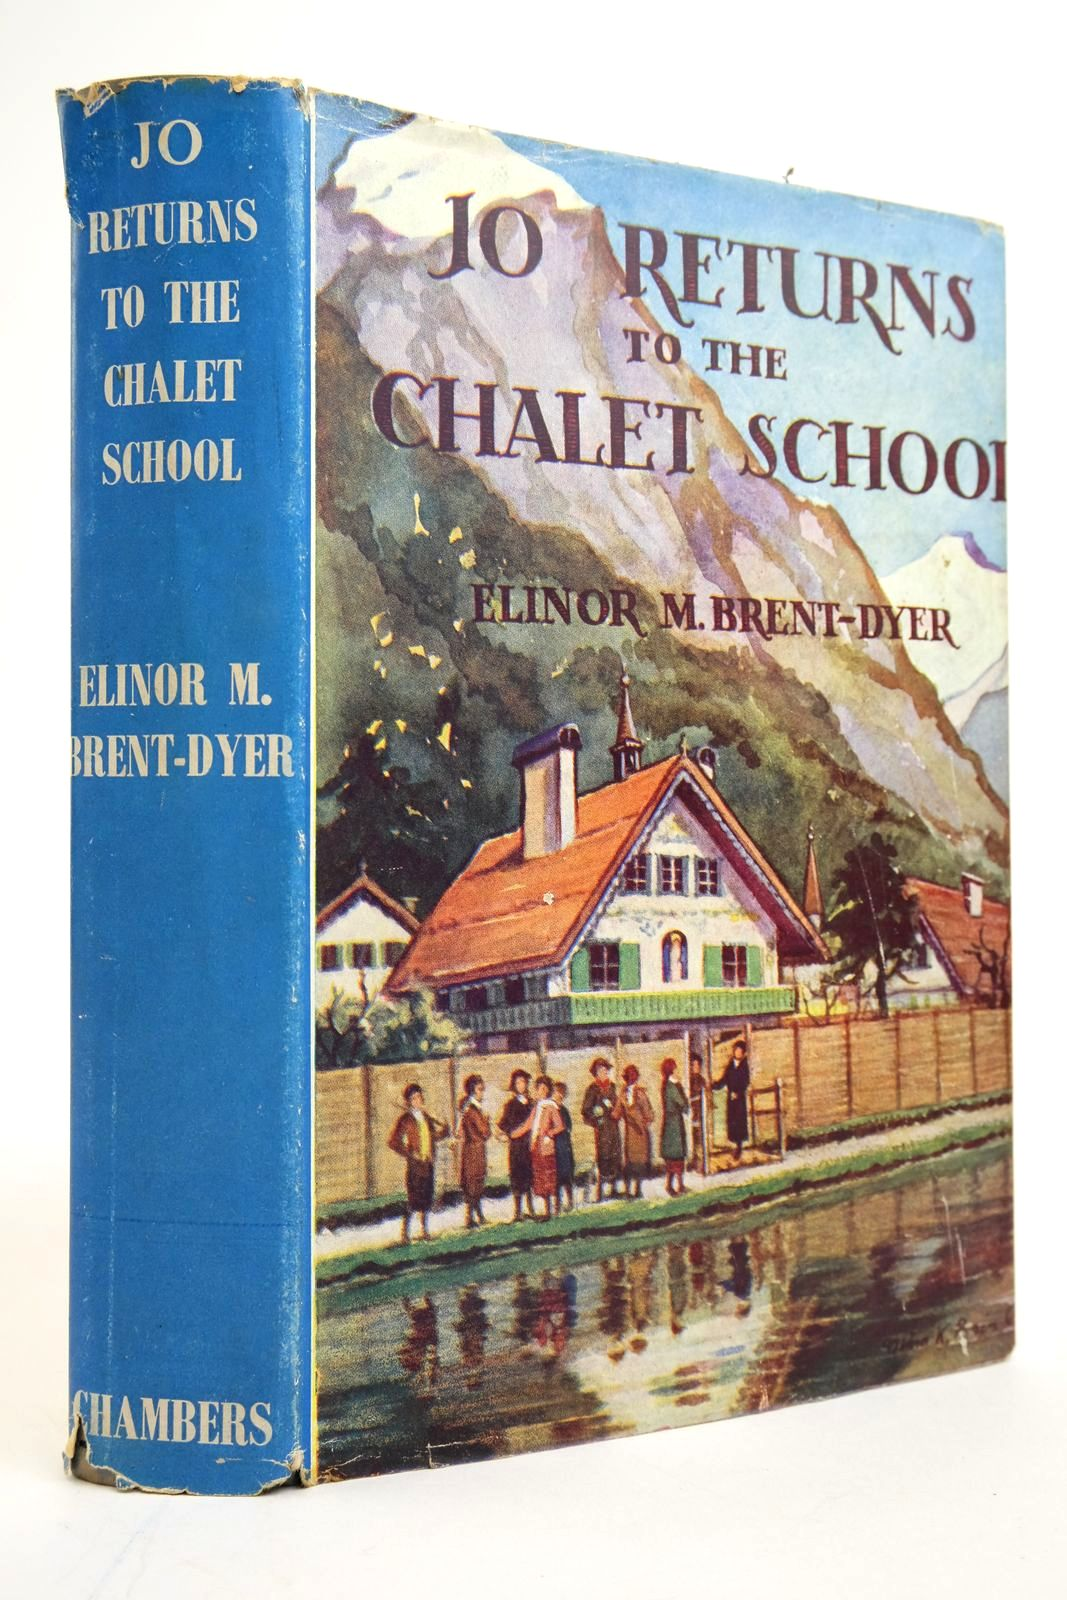 Photo of JO RETURNS TO THE CHALET SCHOOL written by Brent-Dyer, Elinor M. published by W. & R. Chambers Limited (STOCK CODE: 2135235)  for sale by Stella & Rose's Books